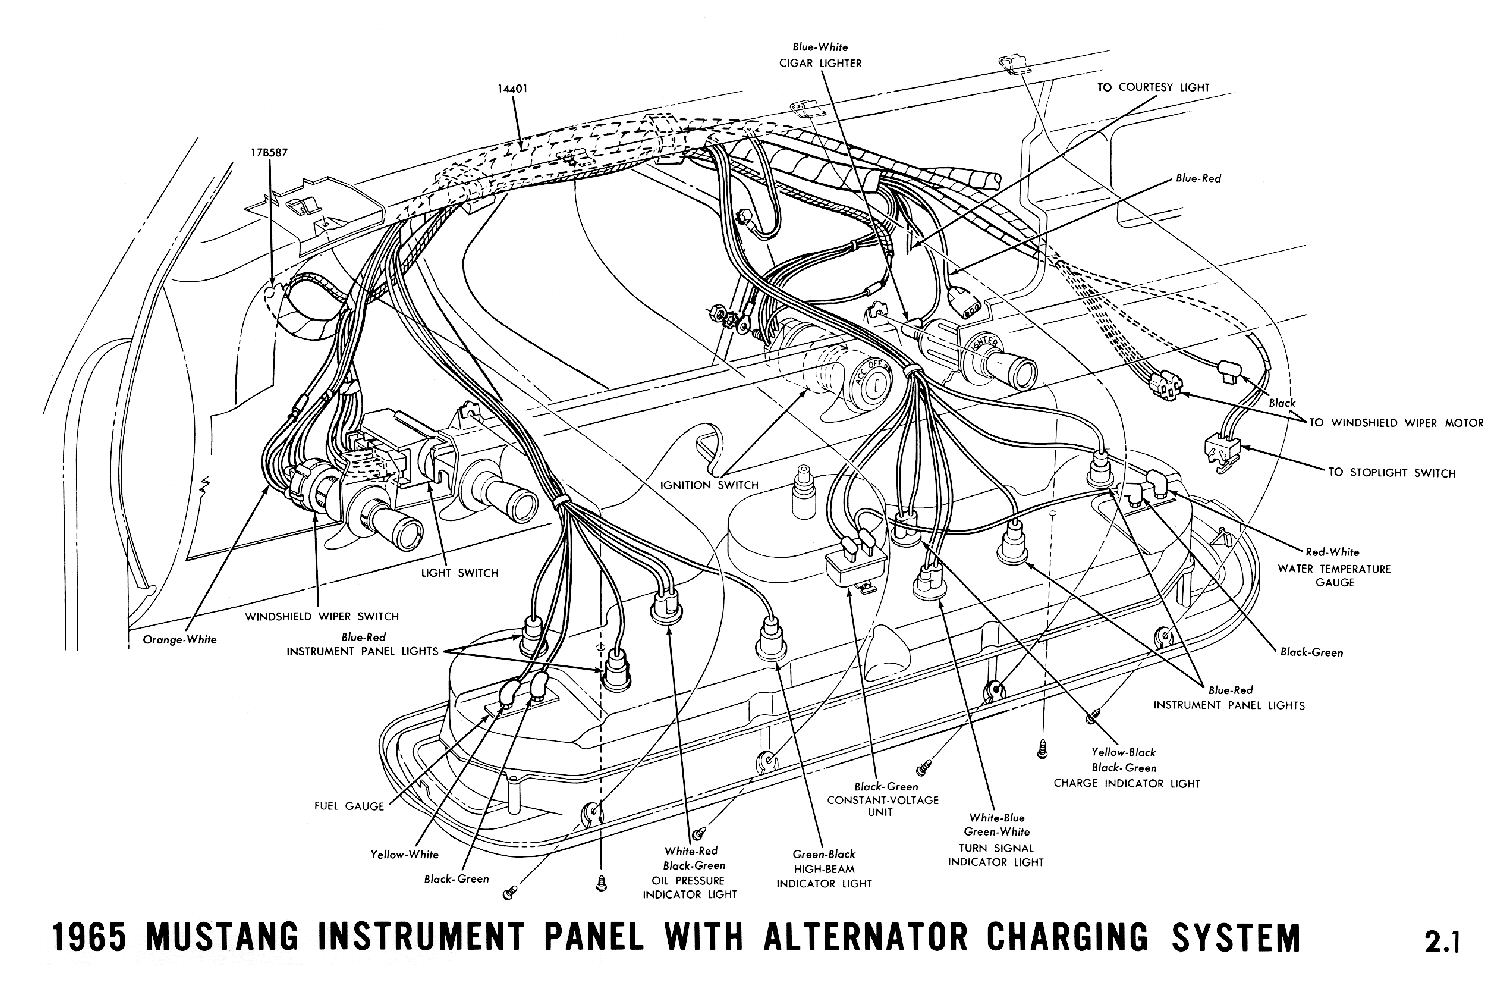 1965a 1965 mustang wiring diagrams average joe restoration wiring harness 1964 mustang at bayanpartner.co